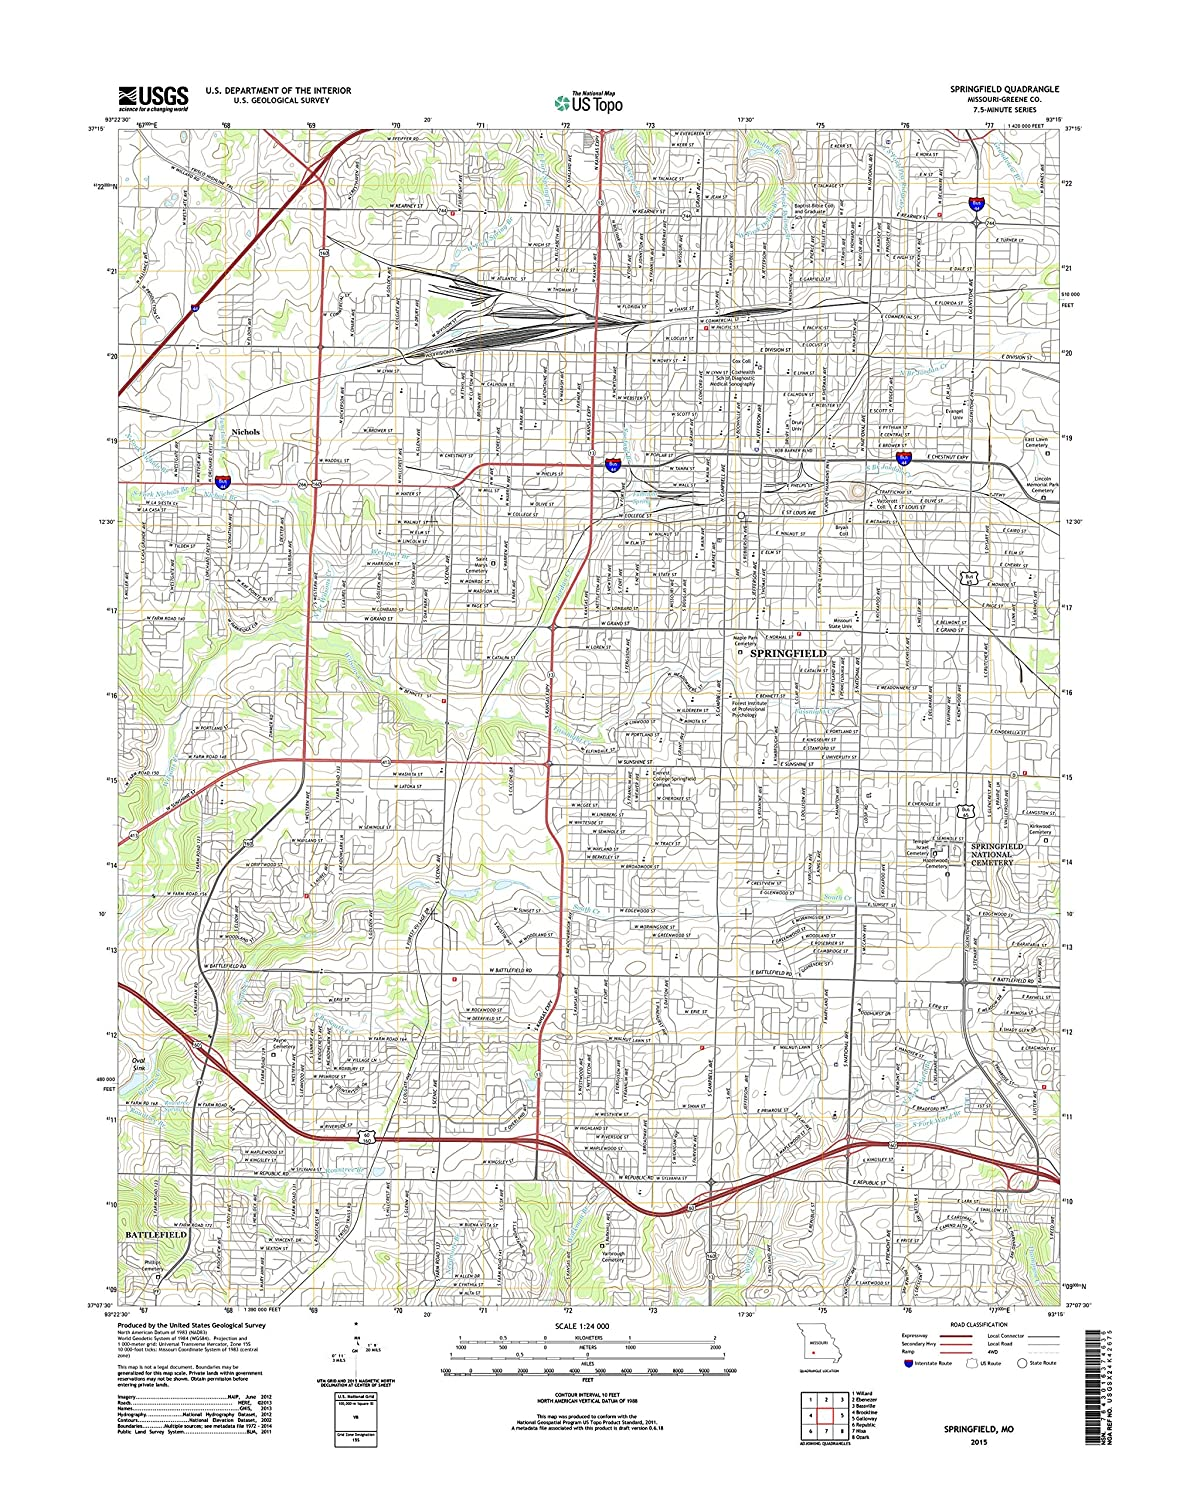 "Topographic Map Poster - SPRINGFIELD, MO TNM GEOPDF 7.5X7.5 GRID 24000-SCALE TM 2012, 19""x24"", Glossy Finish"